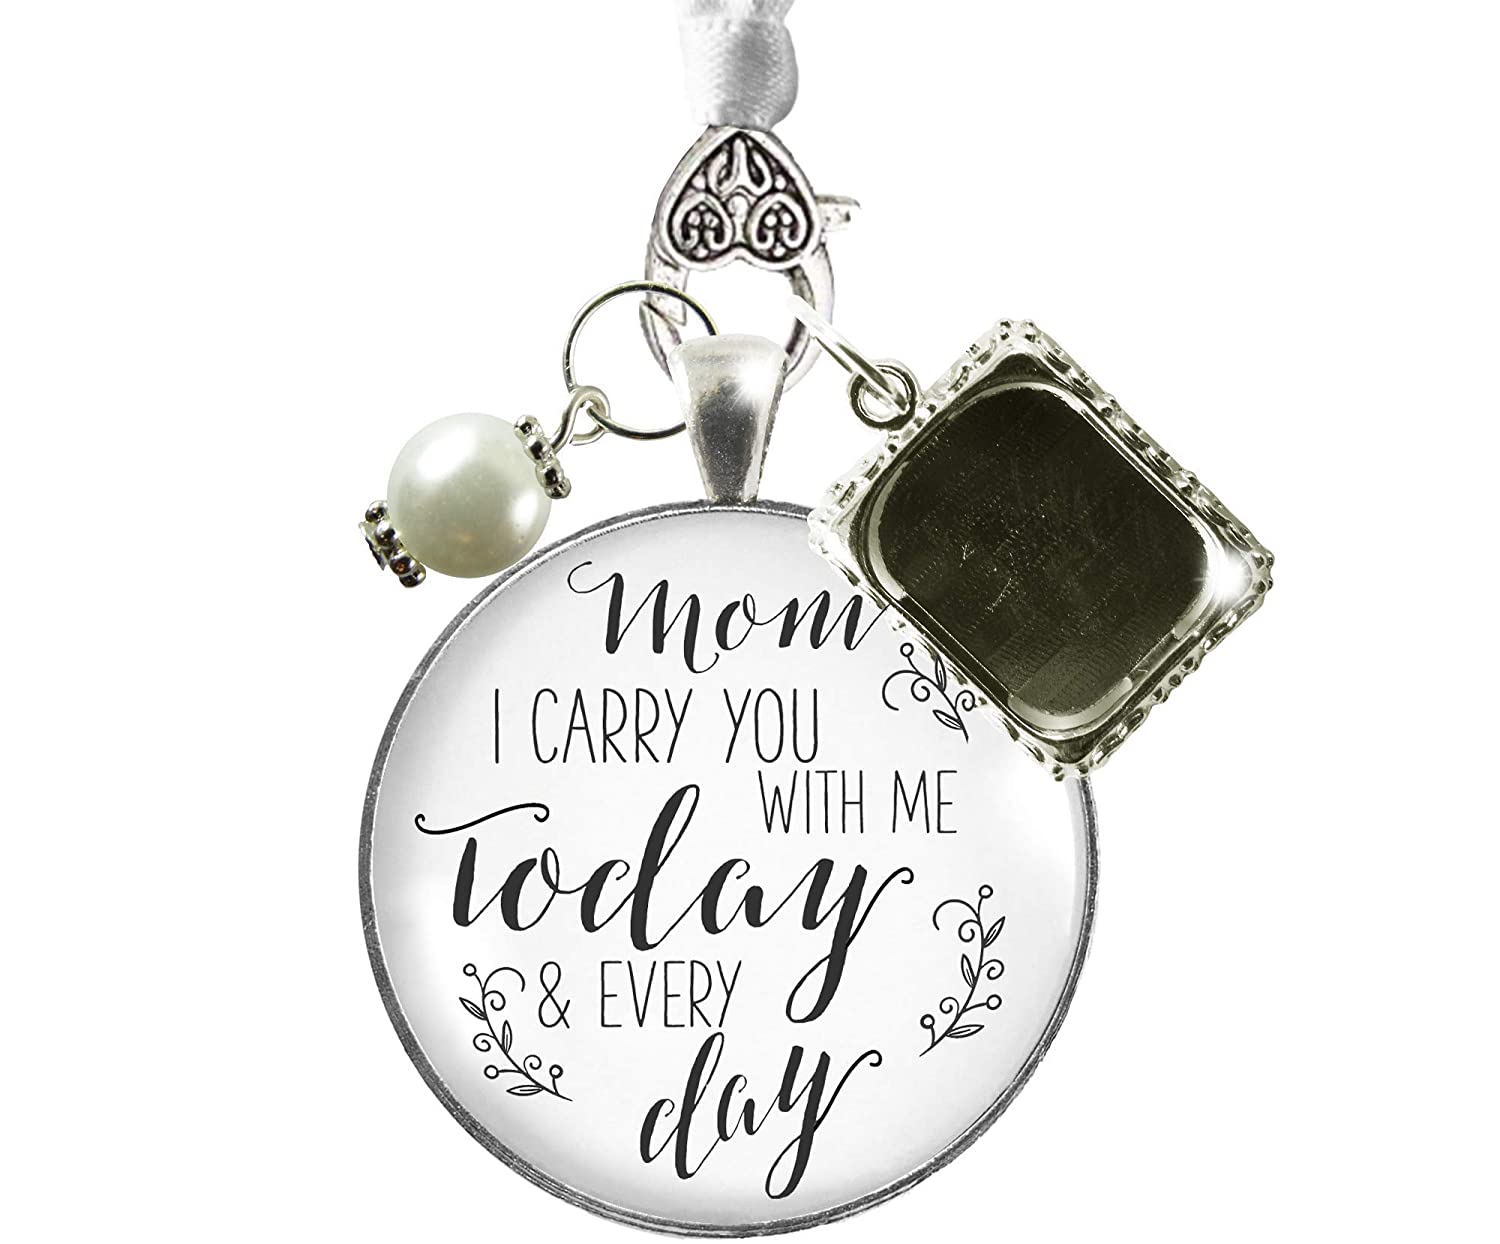 Bridal Bouquet Photo Charm Mom I Carry You Wedding White Silver Finish Memory Jewels